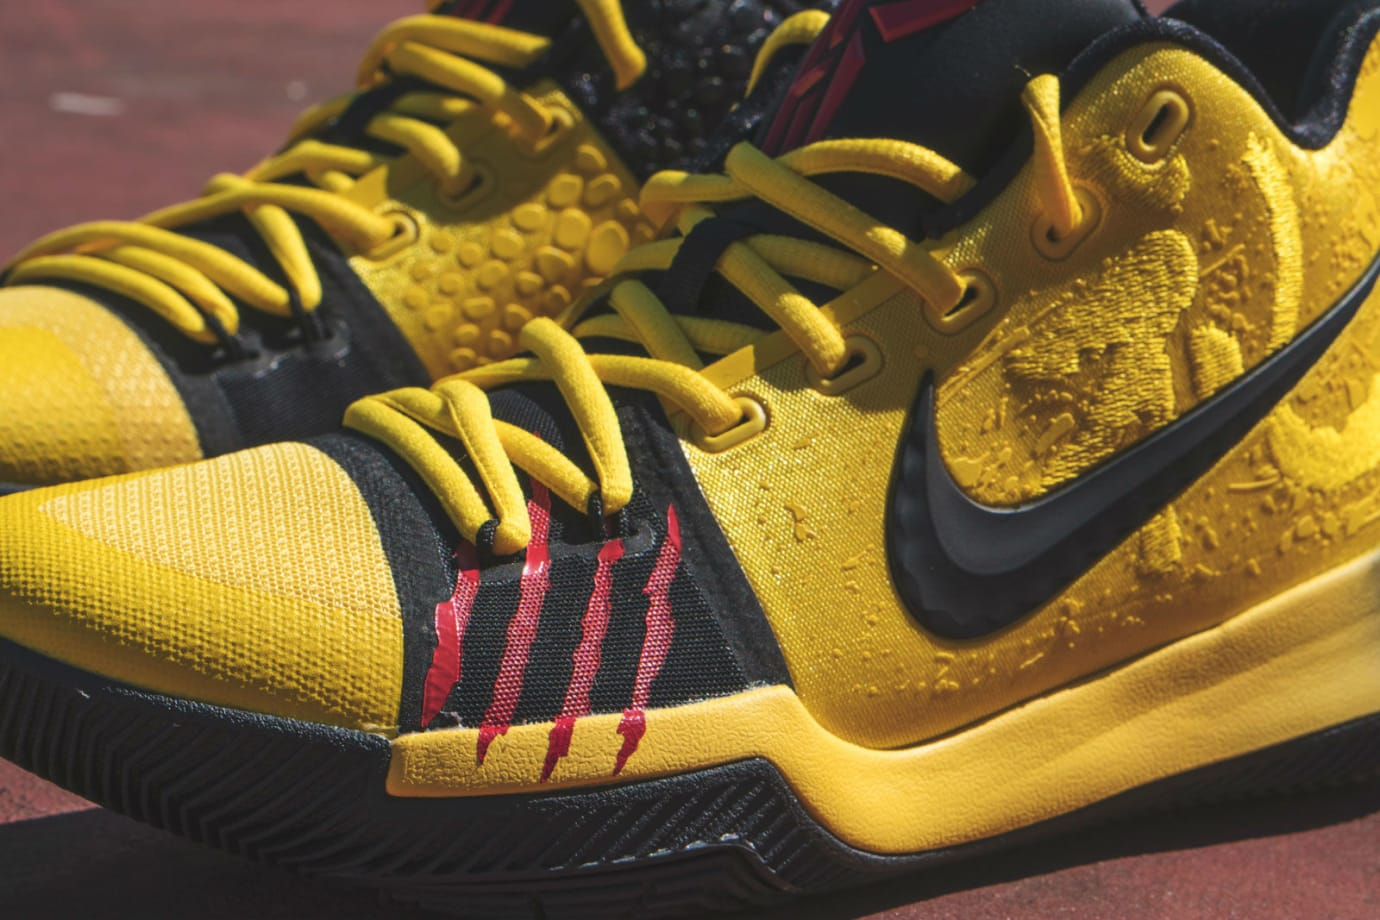 super popular db4af 577e5 Nike Kyrie 3 Mamba Mentality Bruce Lee Restock Detail AJ1672-700